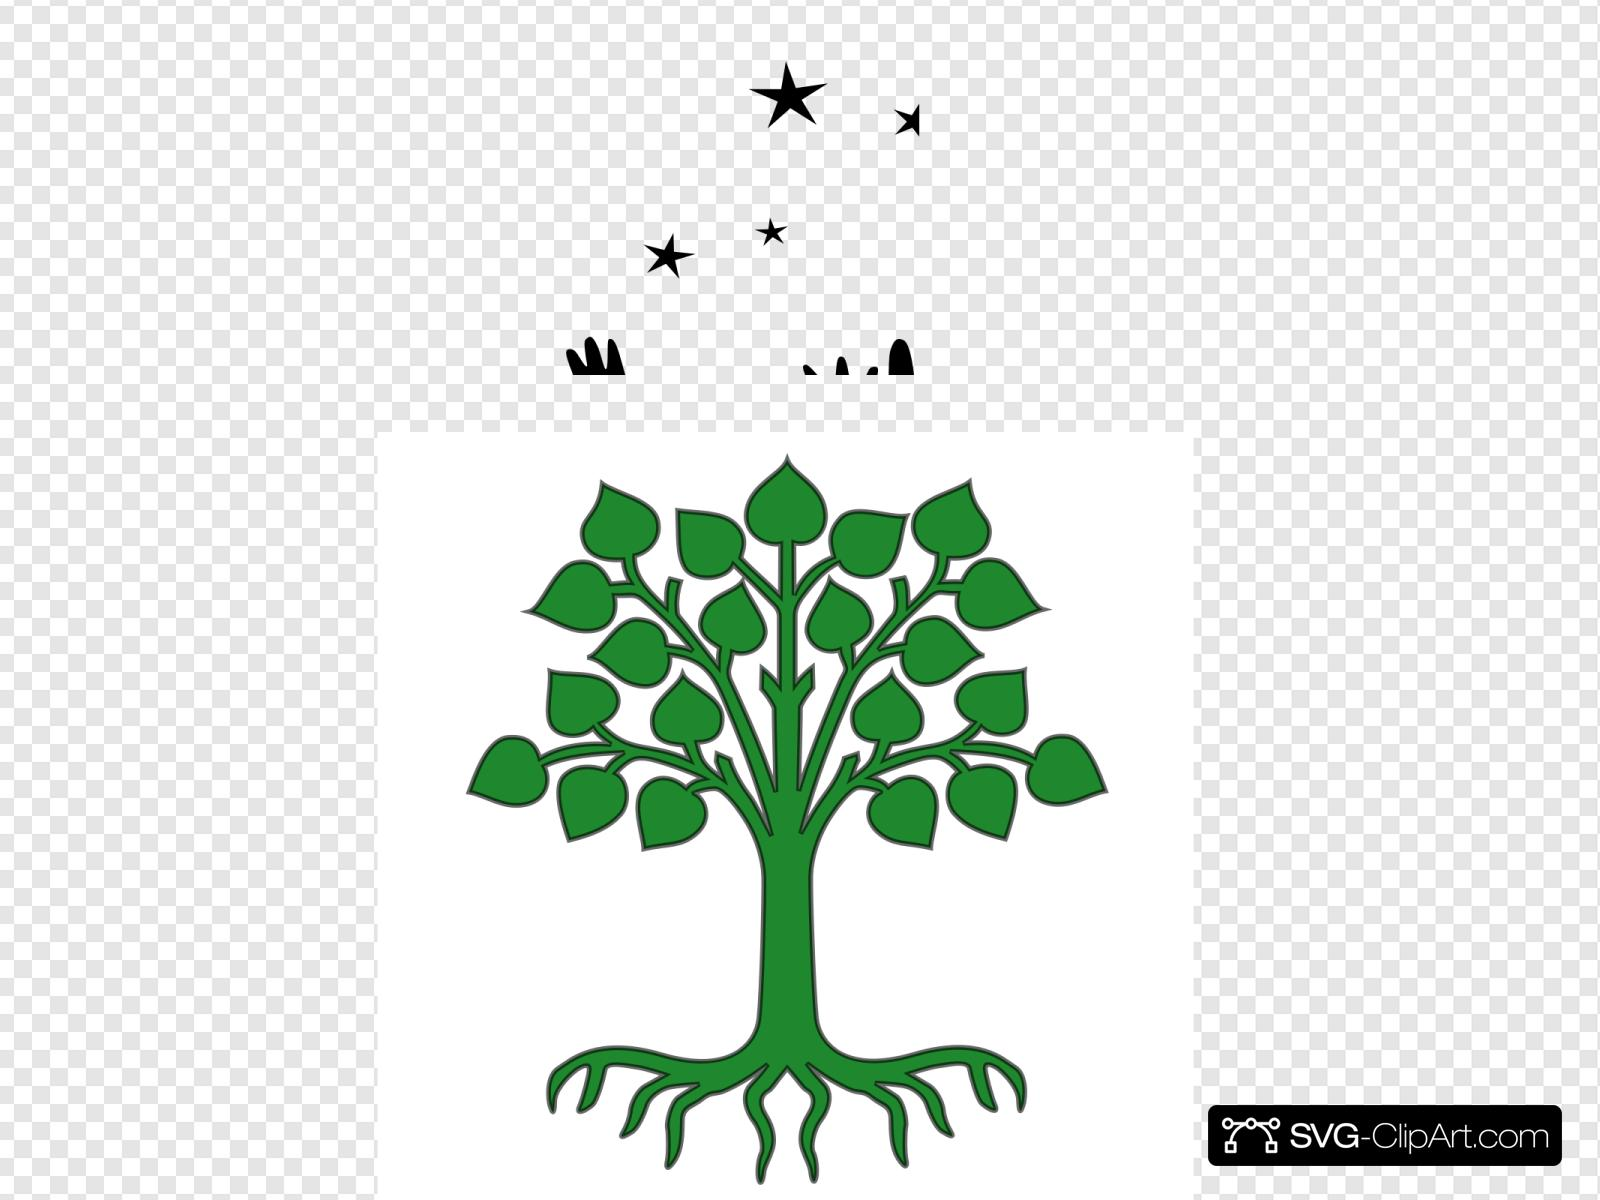 Aspirations Clip art, Icon and SVG.